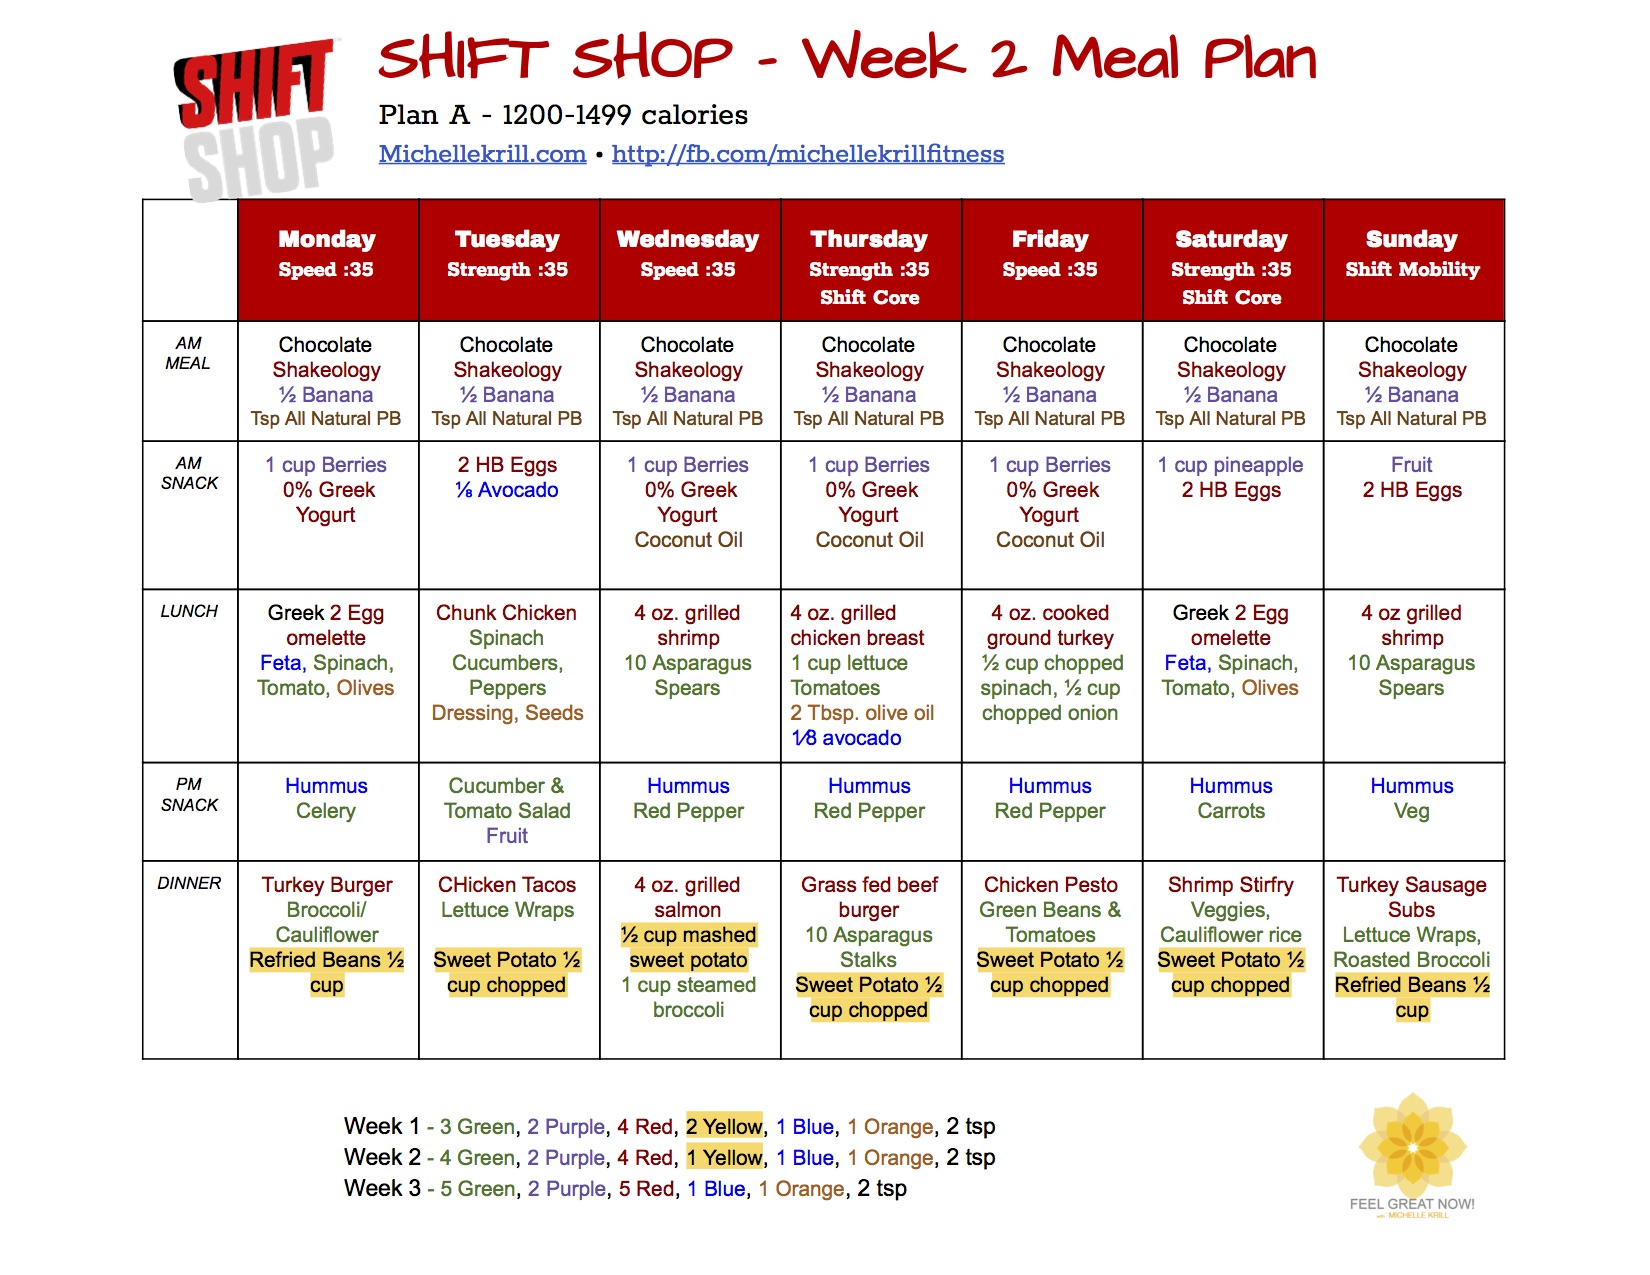 Precious 1200 1499 Plan A Shift Shop Week 2 Meal Plan Google Docs Beachbody Diet Shakes Beachbody Diet Reviews nice food Beach Body Diet